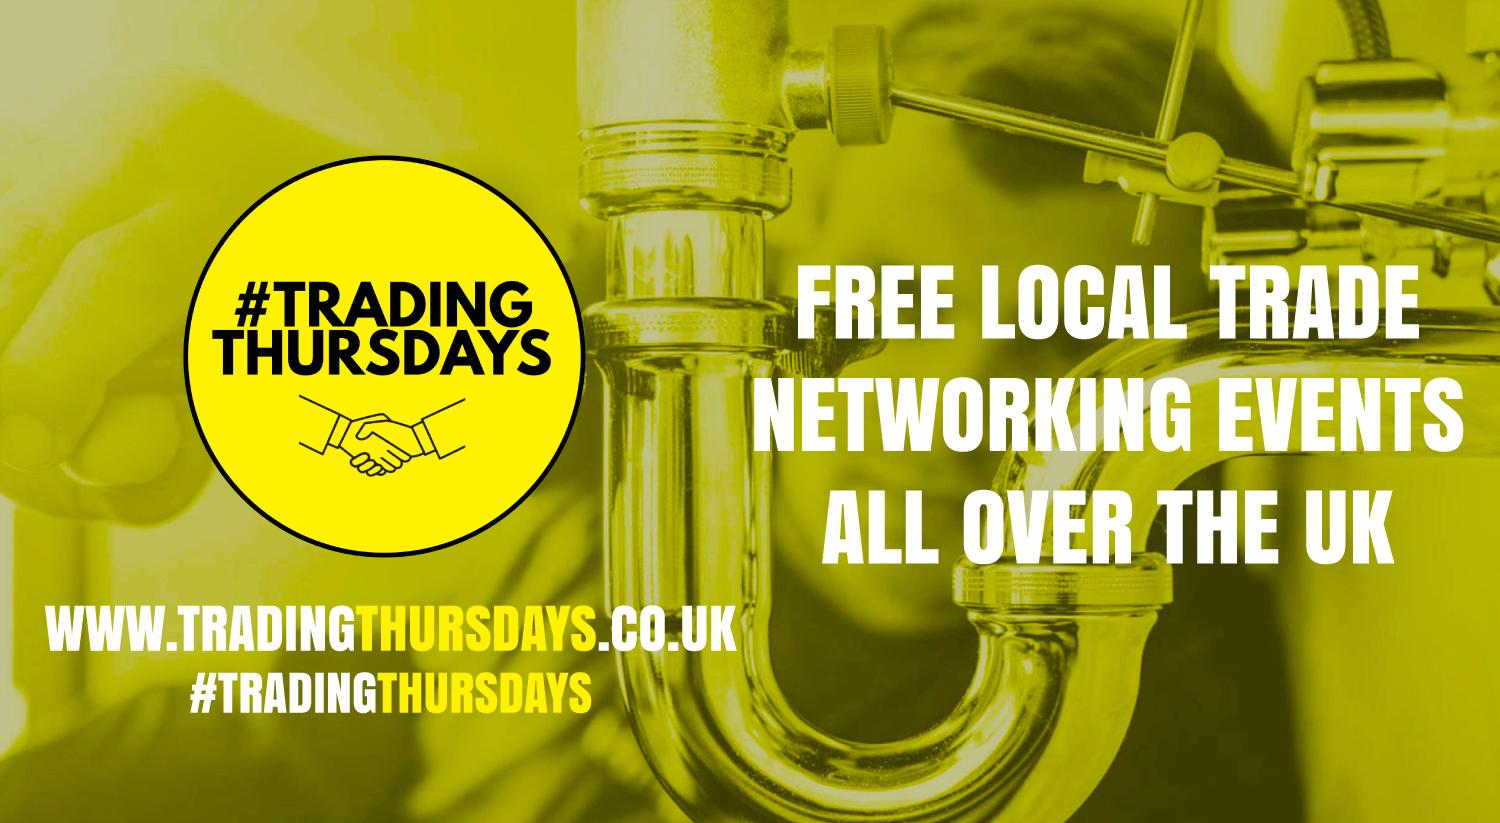 Trading Thursdays! Free networking event for traders in Fleet